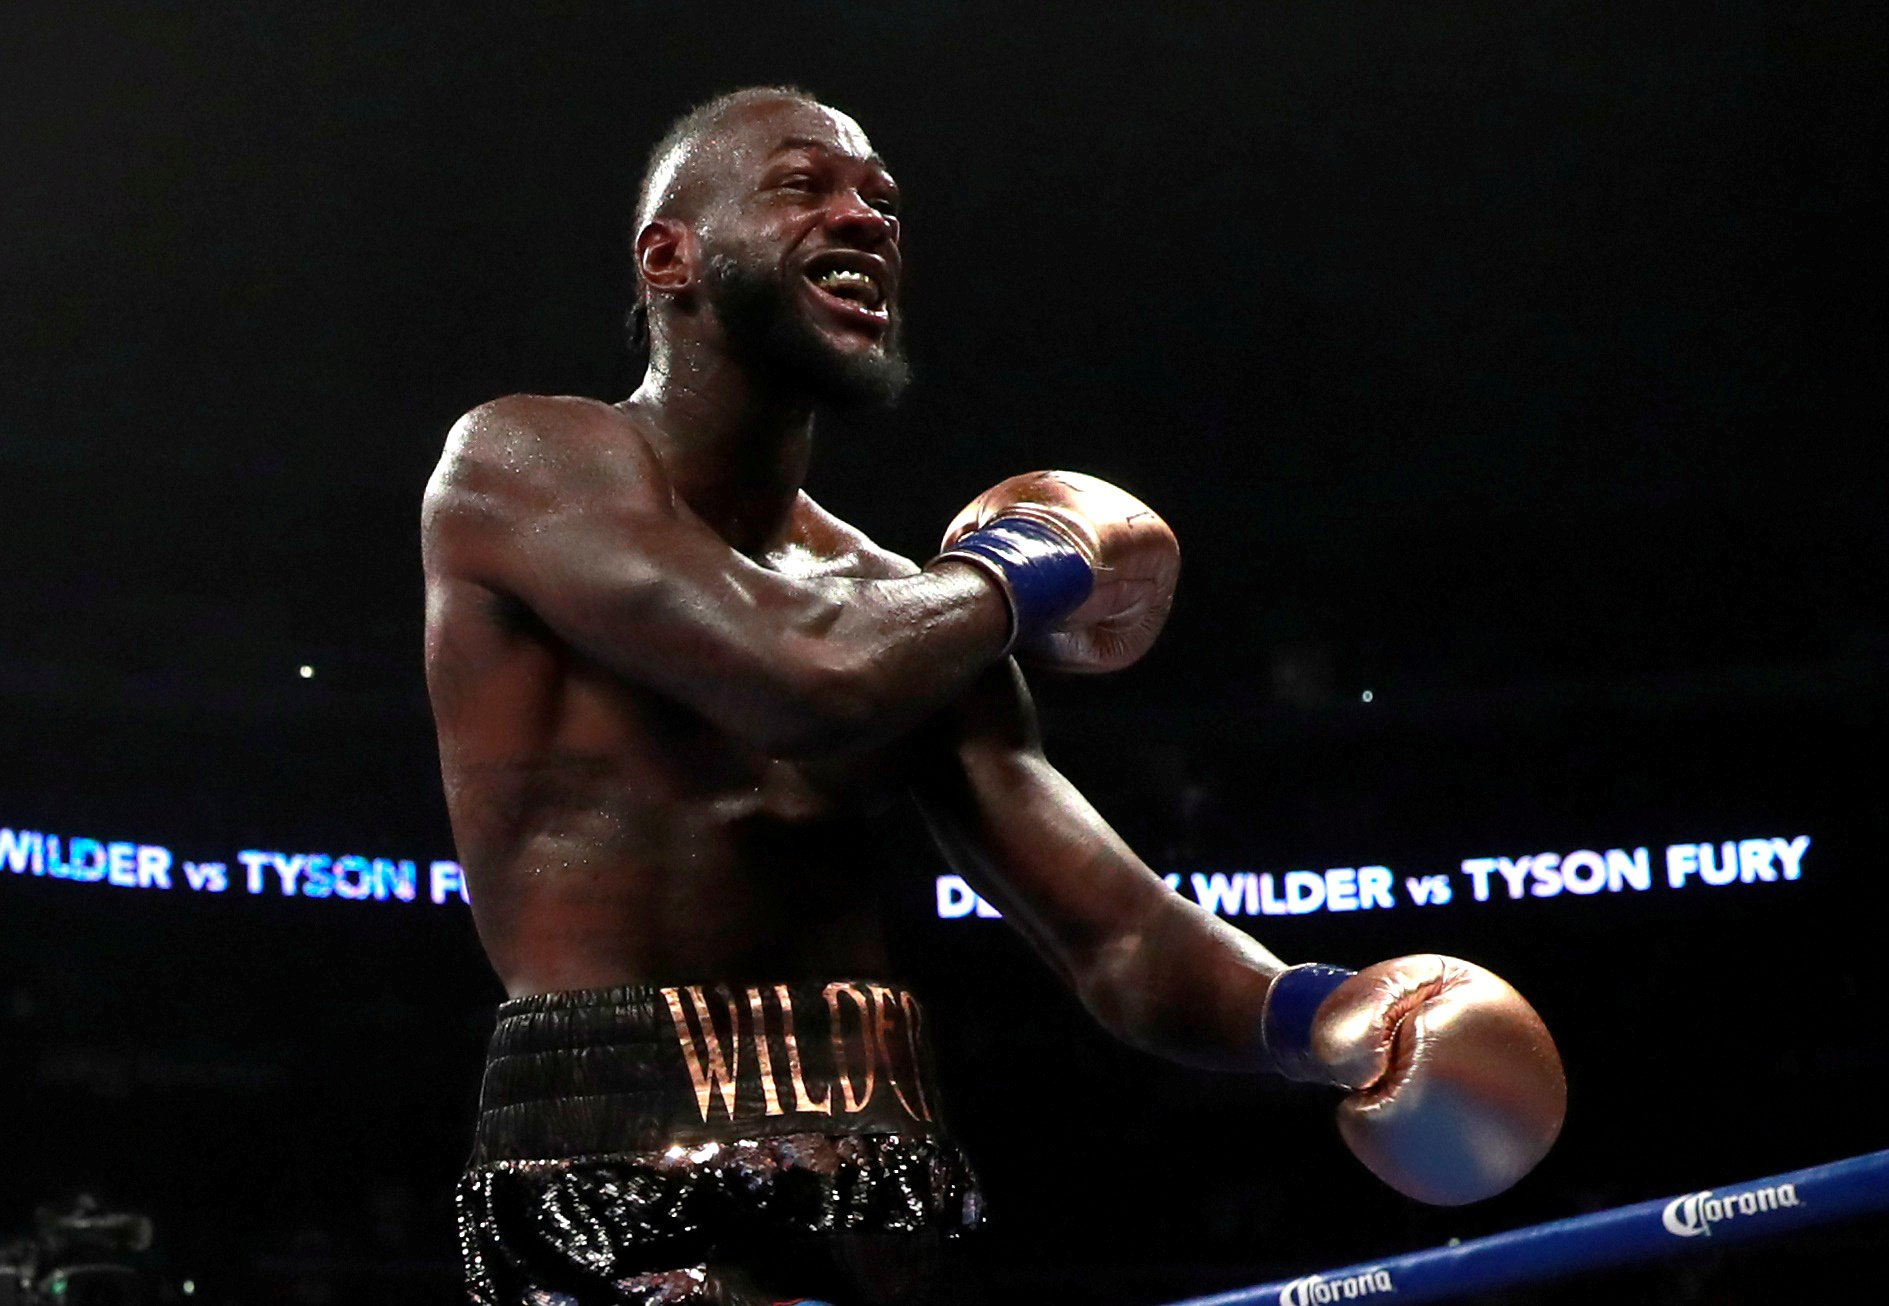 FILE PHOTO: Boxing - Deontay Wilder v Tyson Fury - WBC World Heavyweight Title - Staples Centre, Los Angeles, United States - December 1, 2018 Deontay Wilder reacts after knocking down Tyson Fury Action Images via Reuters/Andrew Couldridge/File Photo